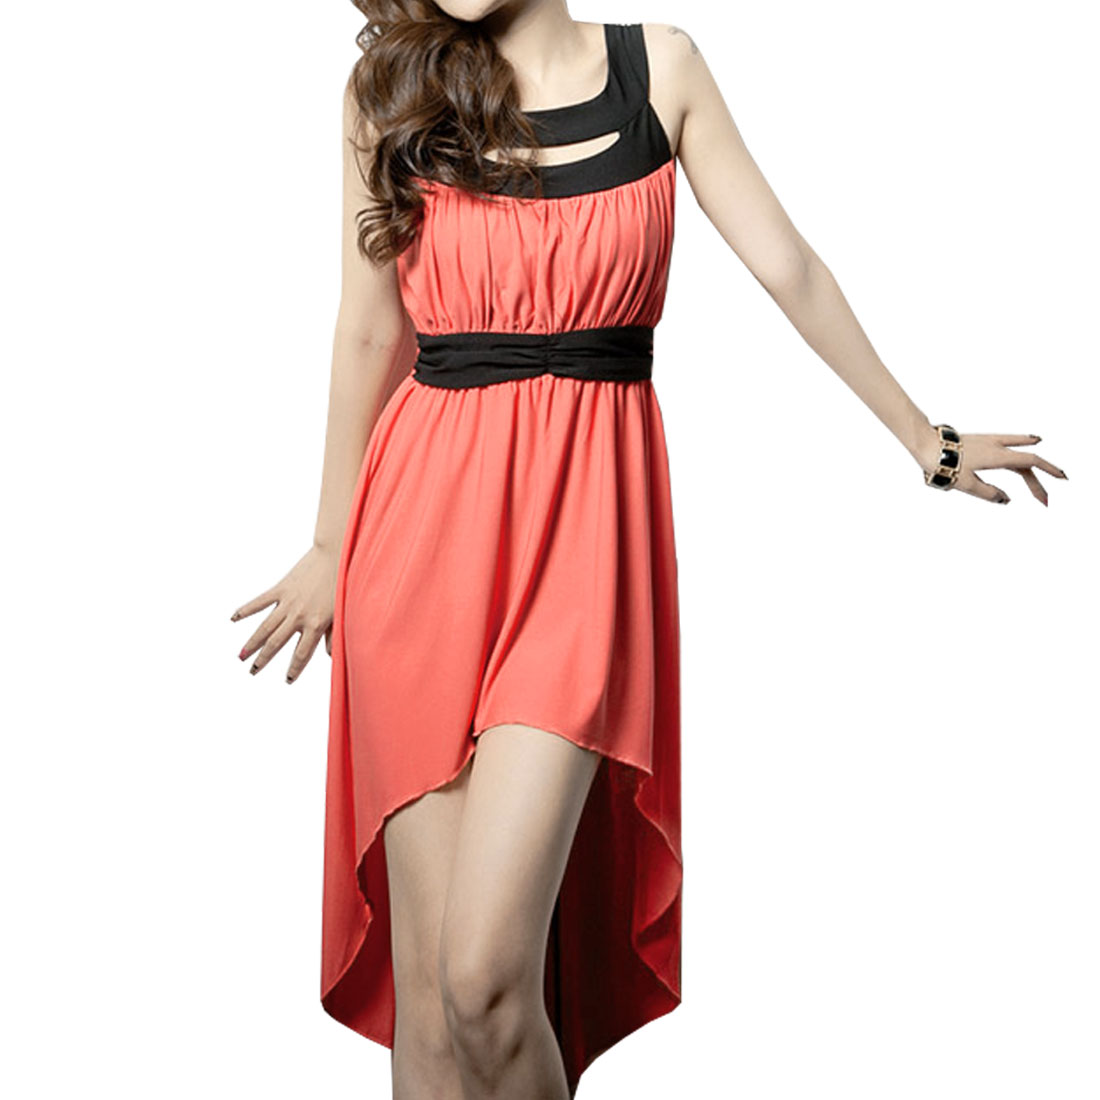 XS Orange Red Backless Hollow Out Shoulders Dress for Lady